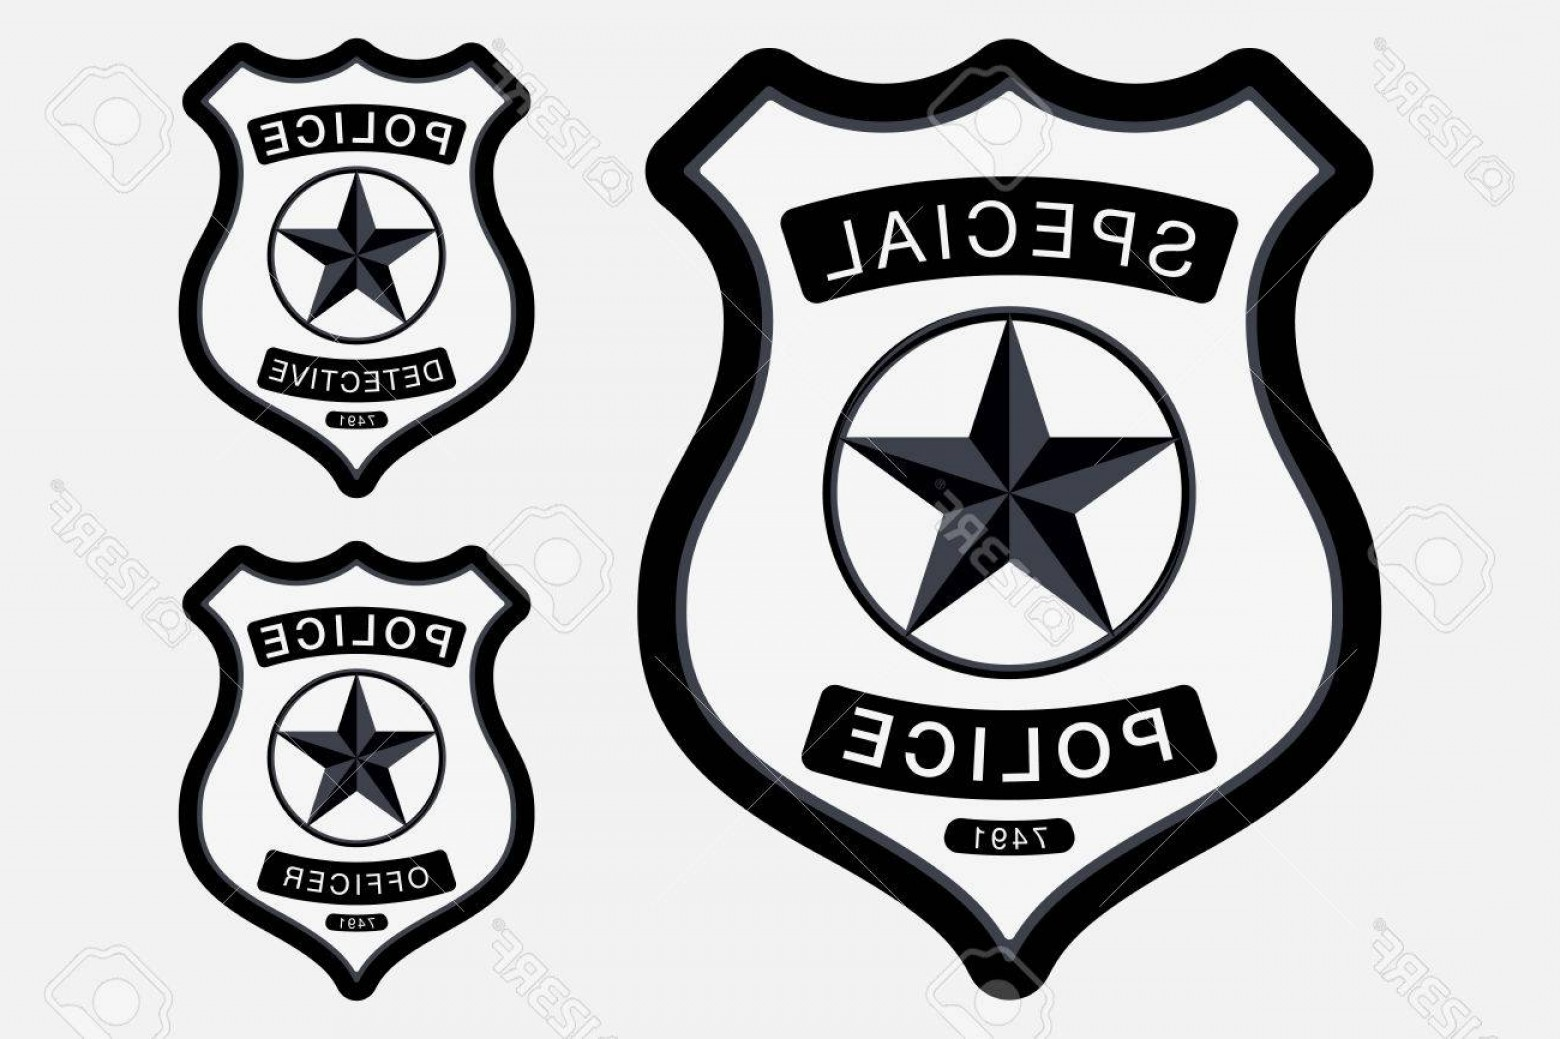 Law Enforcement Badges Vector: Photostock Vector Police Badge Simple Monochrome Sign Vector Illustration Isolated On White Background